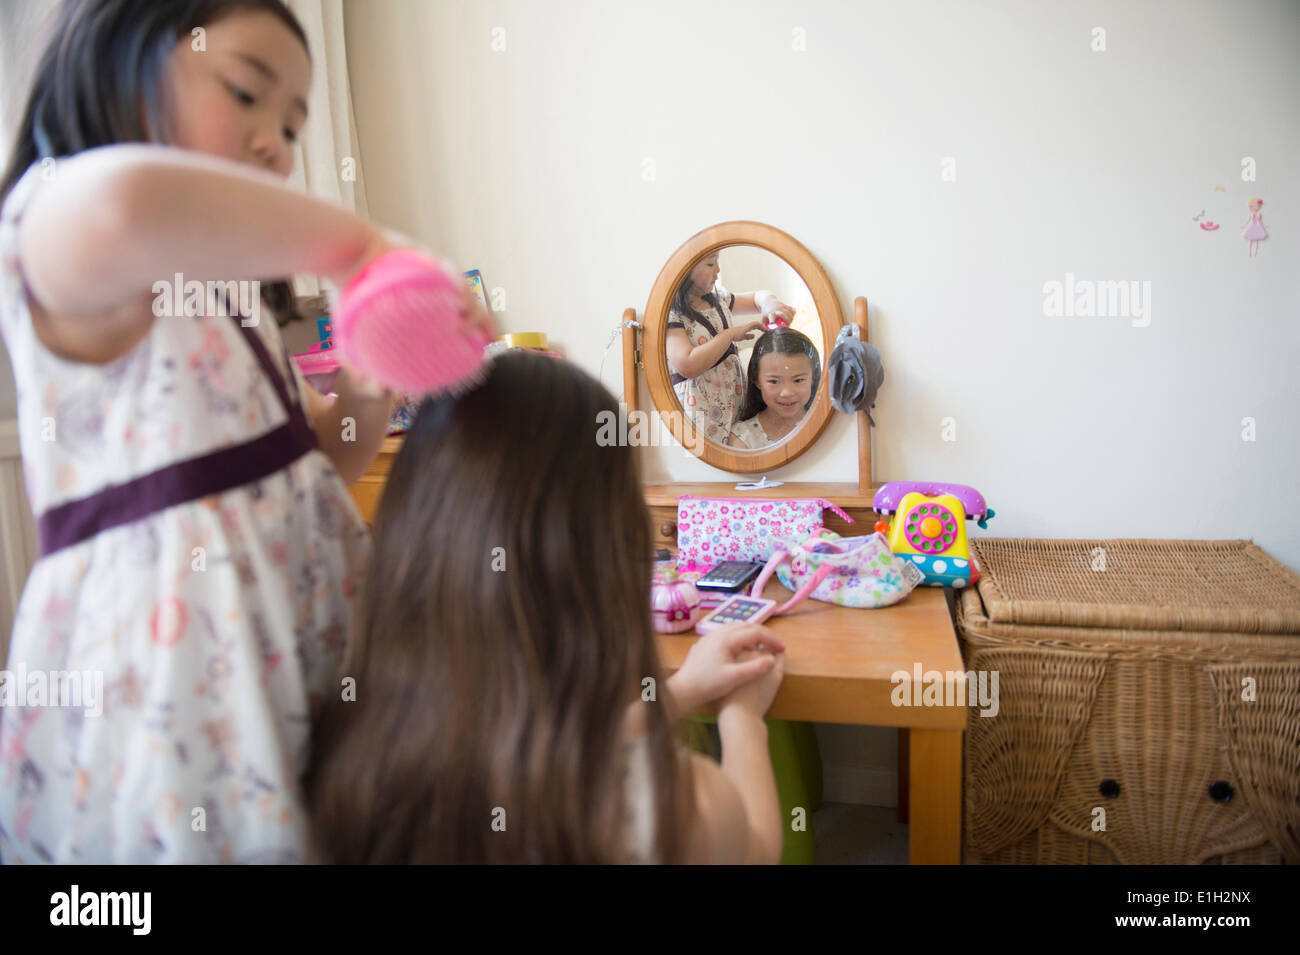 Young girl brushing friends hair in bedroom - Stock Image